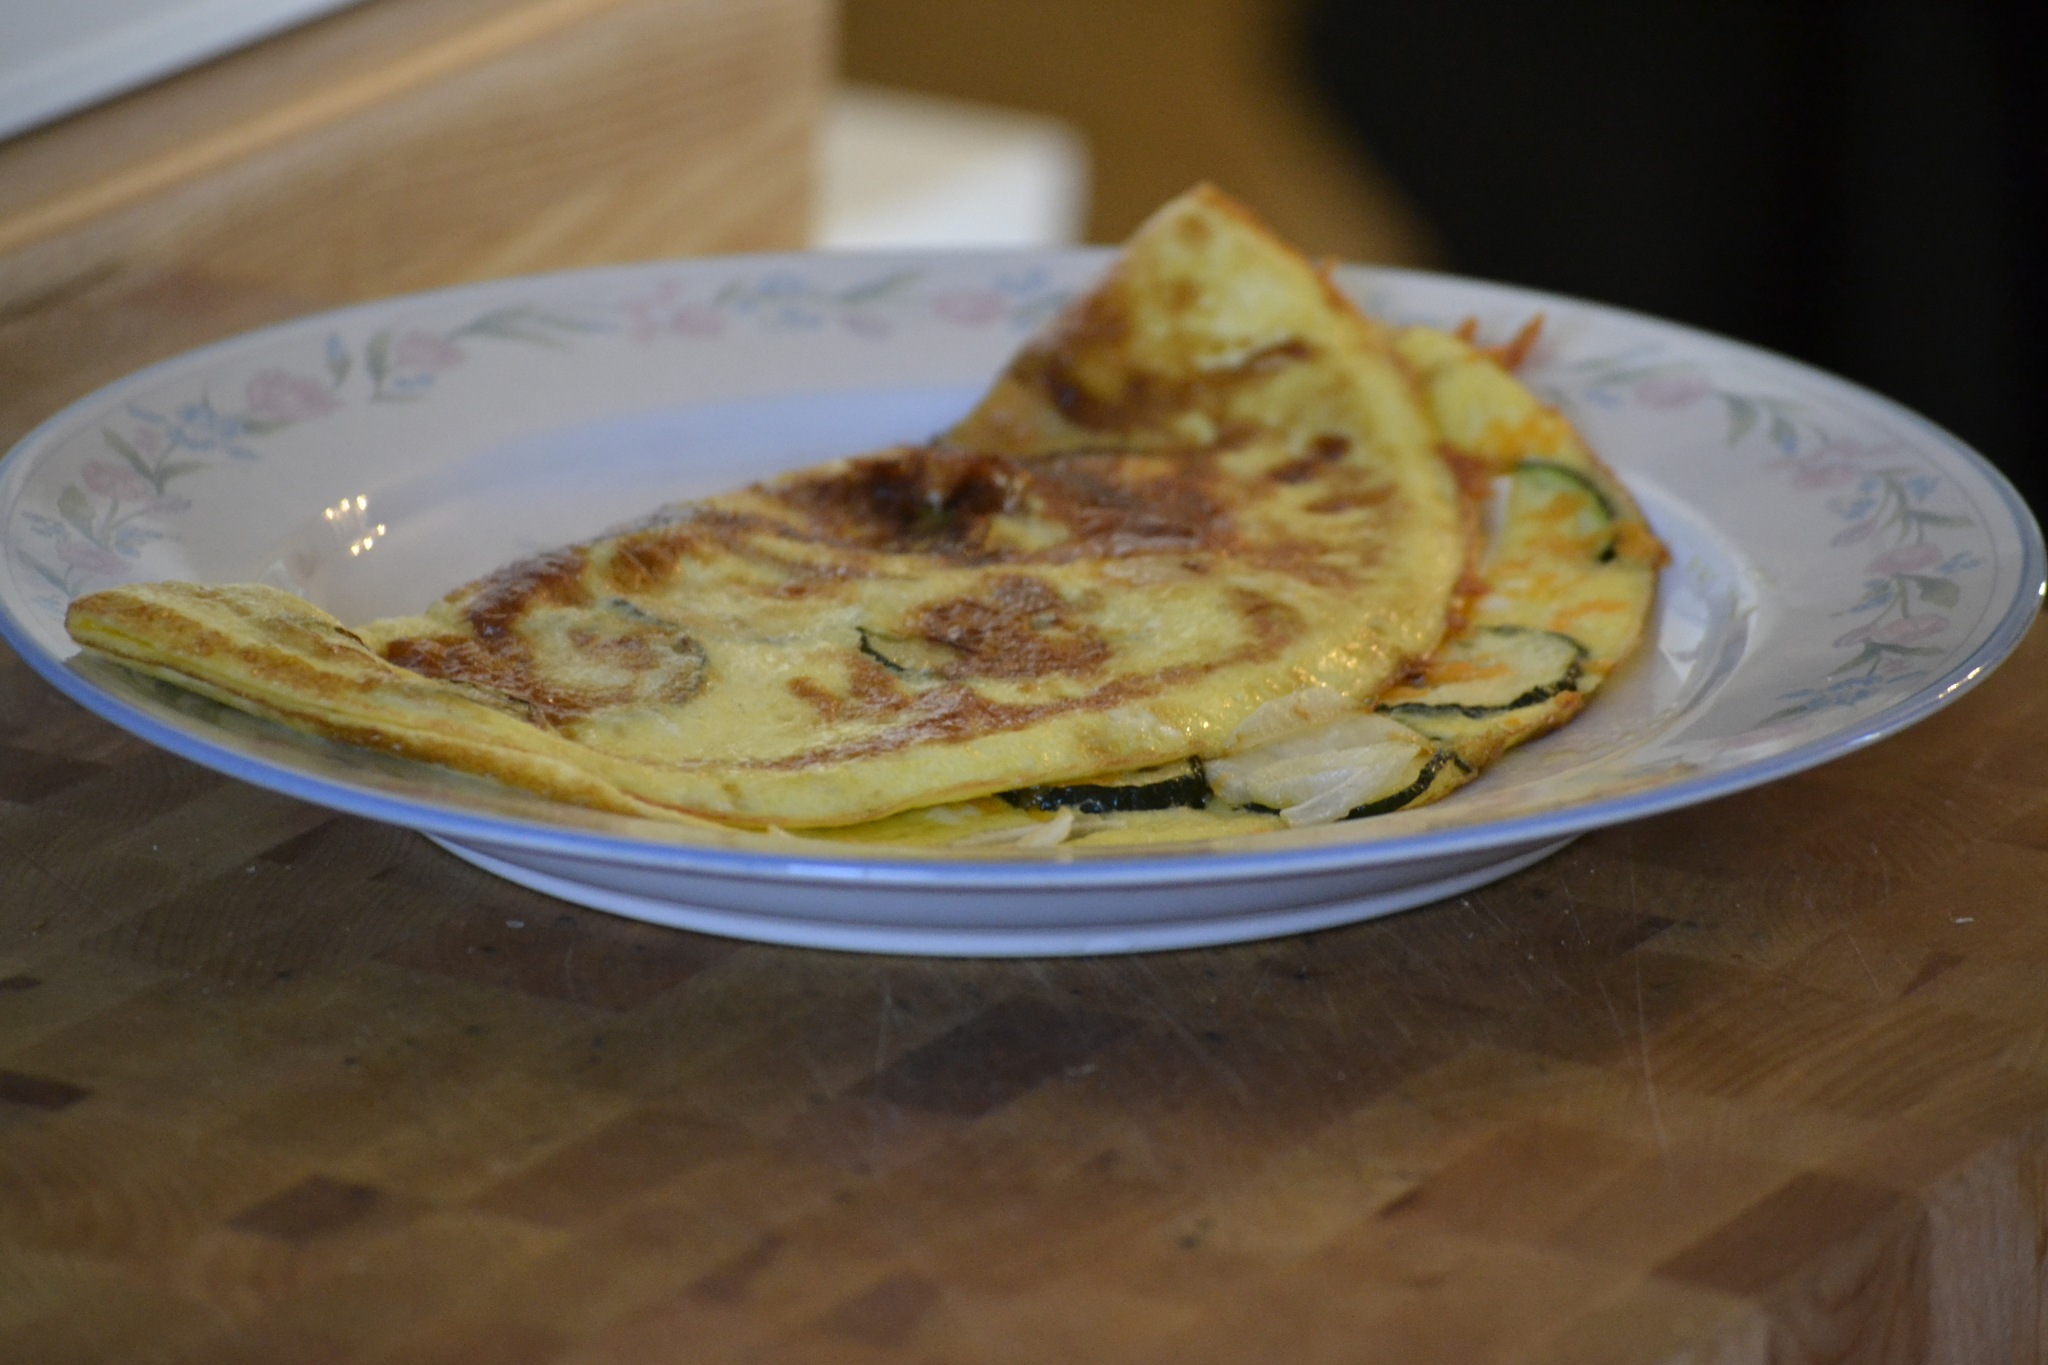 Zucchini and swiss cheese omlette by Trevor Smith